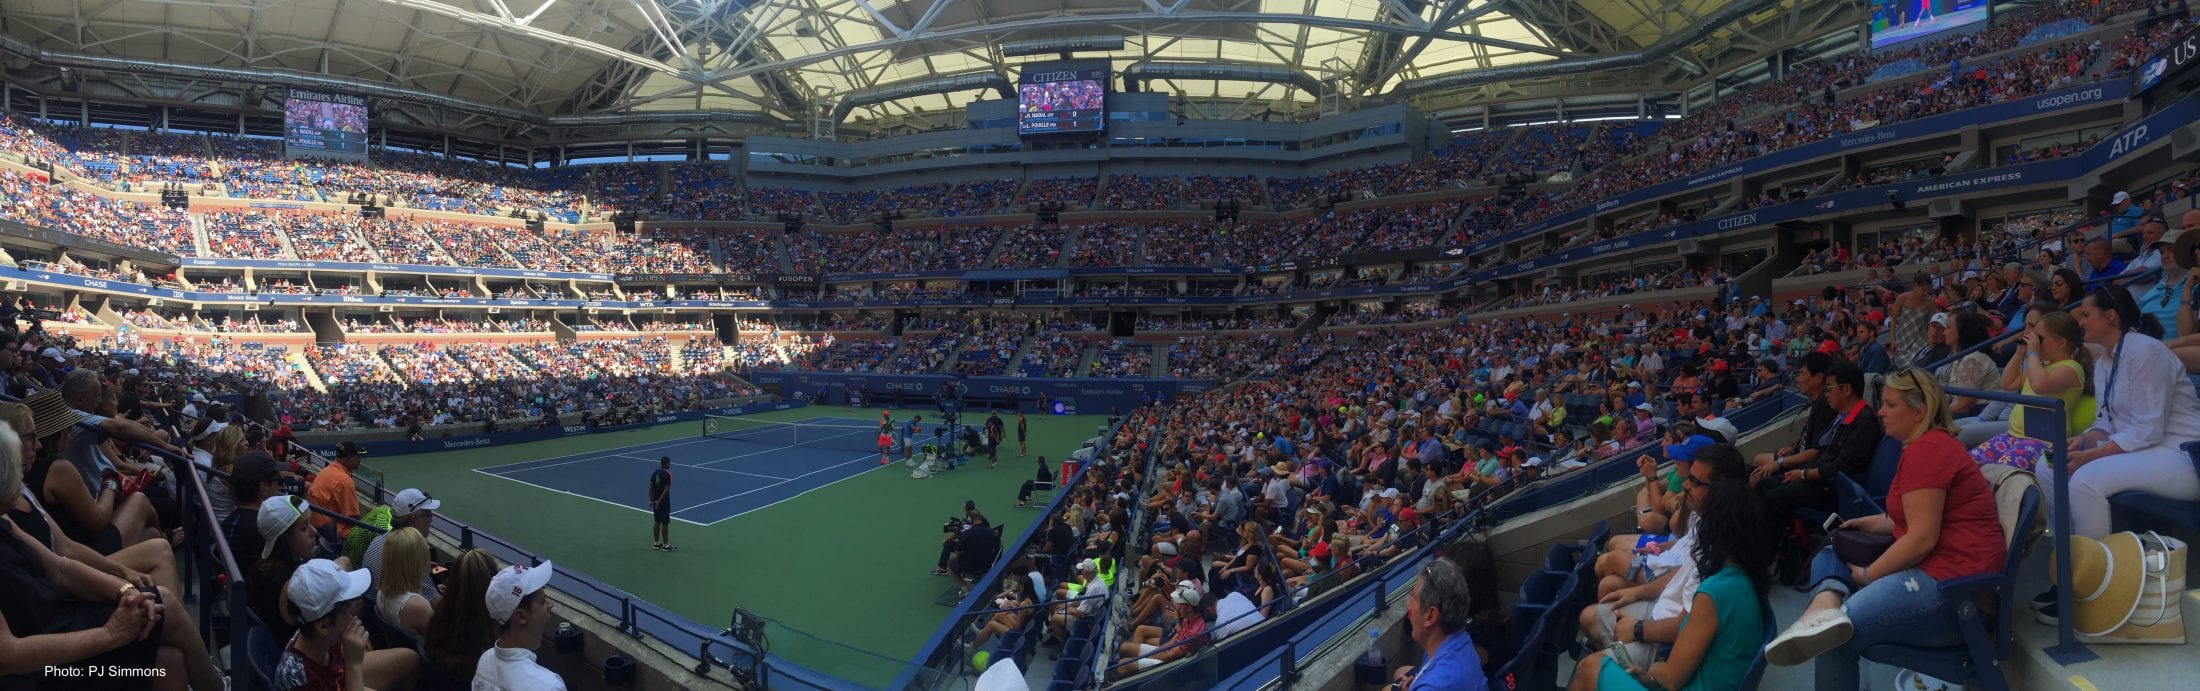 i took the po above at the 2016 us open from a corner courtside seat in ashe watching the nadal pouille round of 16 match on labor day